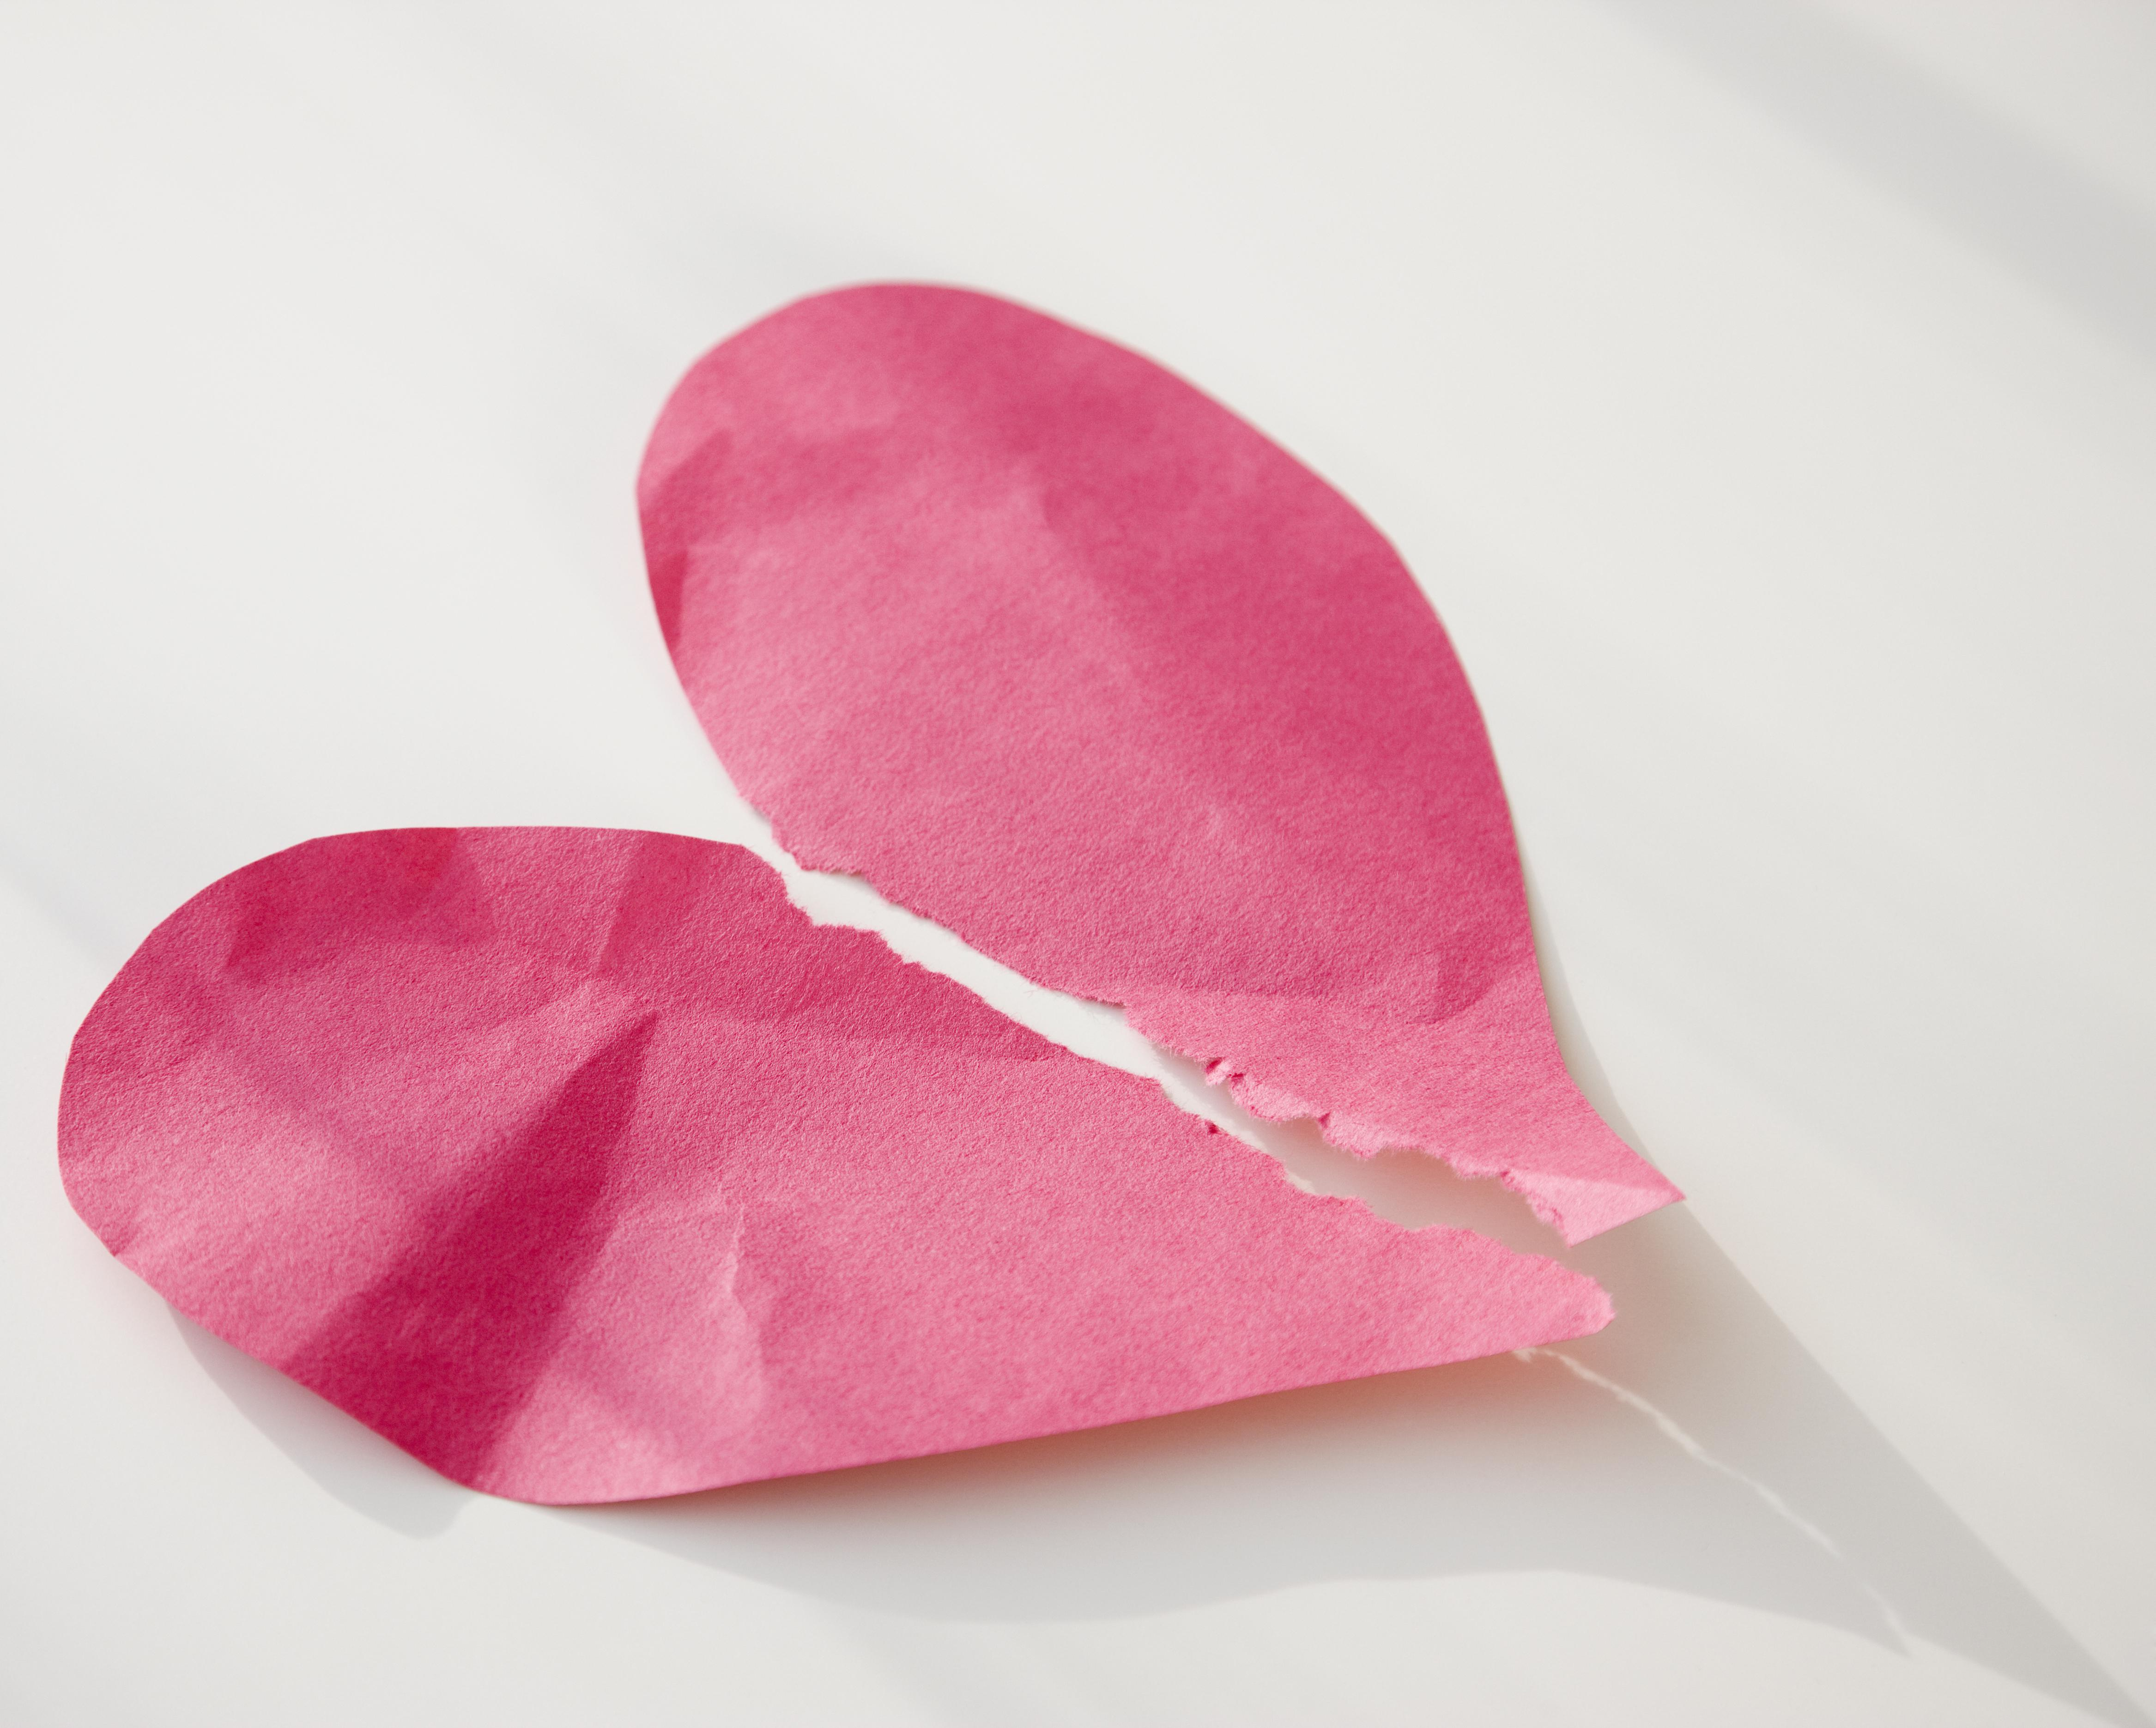 Paper heart ripped in half